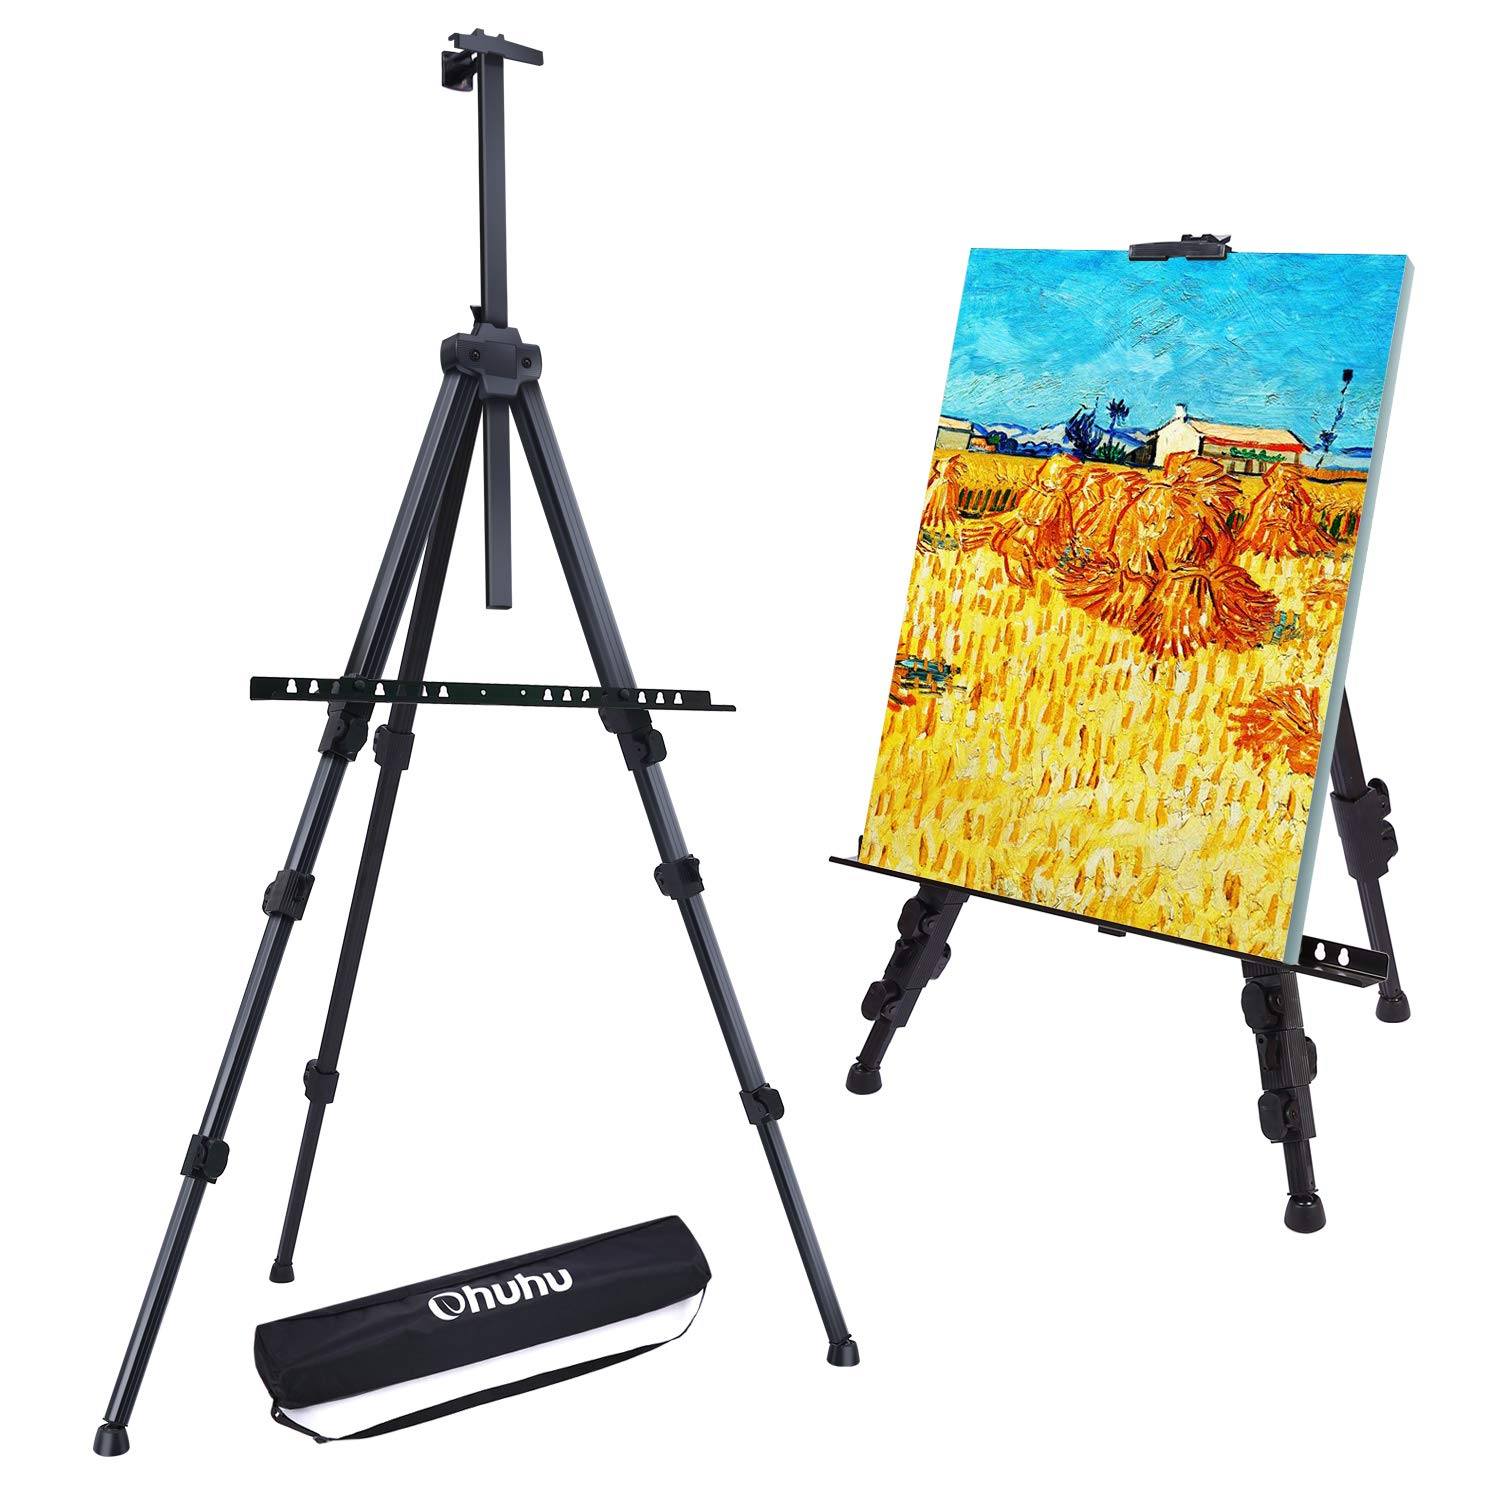 "Easel Stand, Ohuhu 72"" Artist Easels for Display, Aluminum Metal Tripod Field Easel with Bag for Table-Top/Floor/Flip Charts, Black Art Easels W/Adjustable Height 25-72"" for Christmas Gifts"